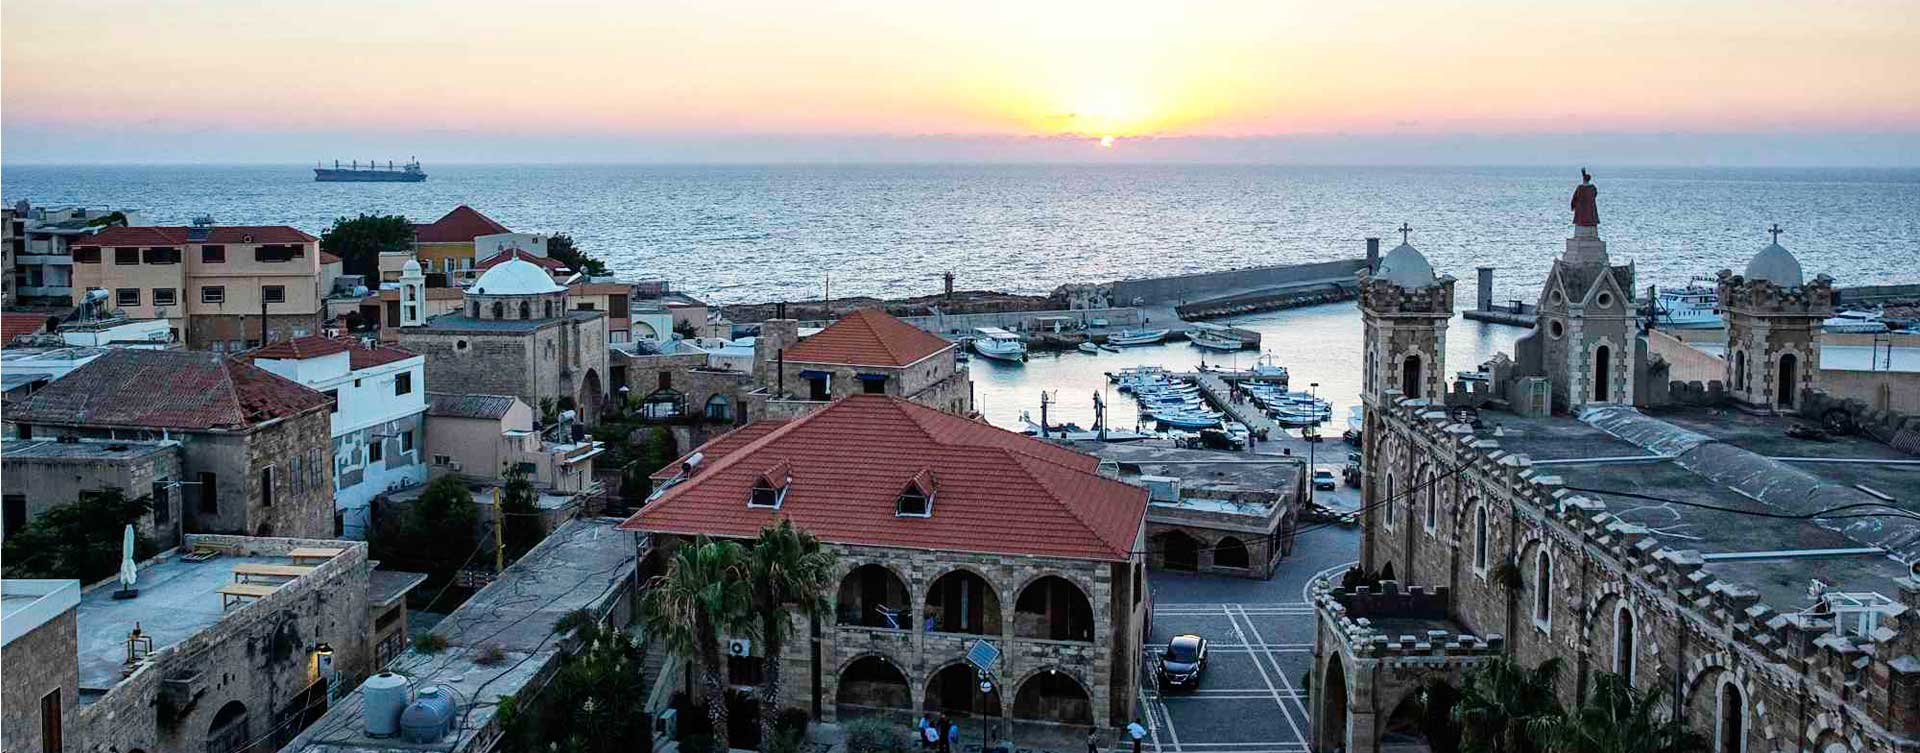 Old City Guest House Batroun